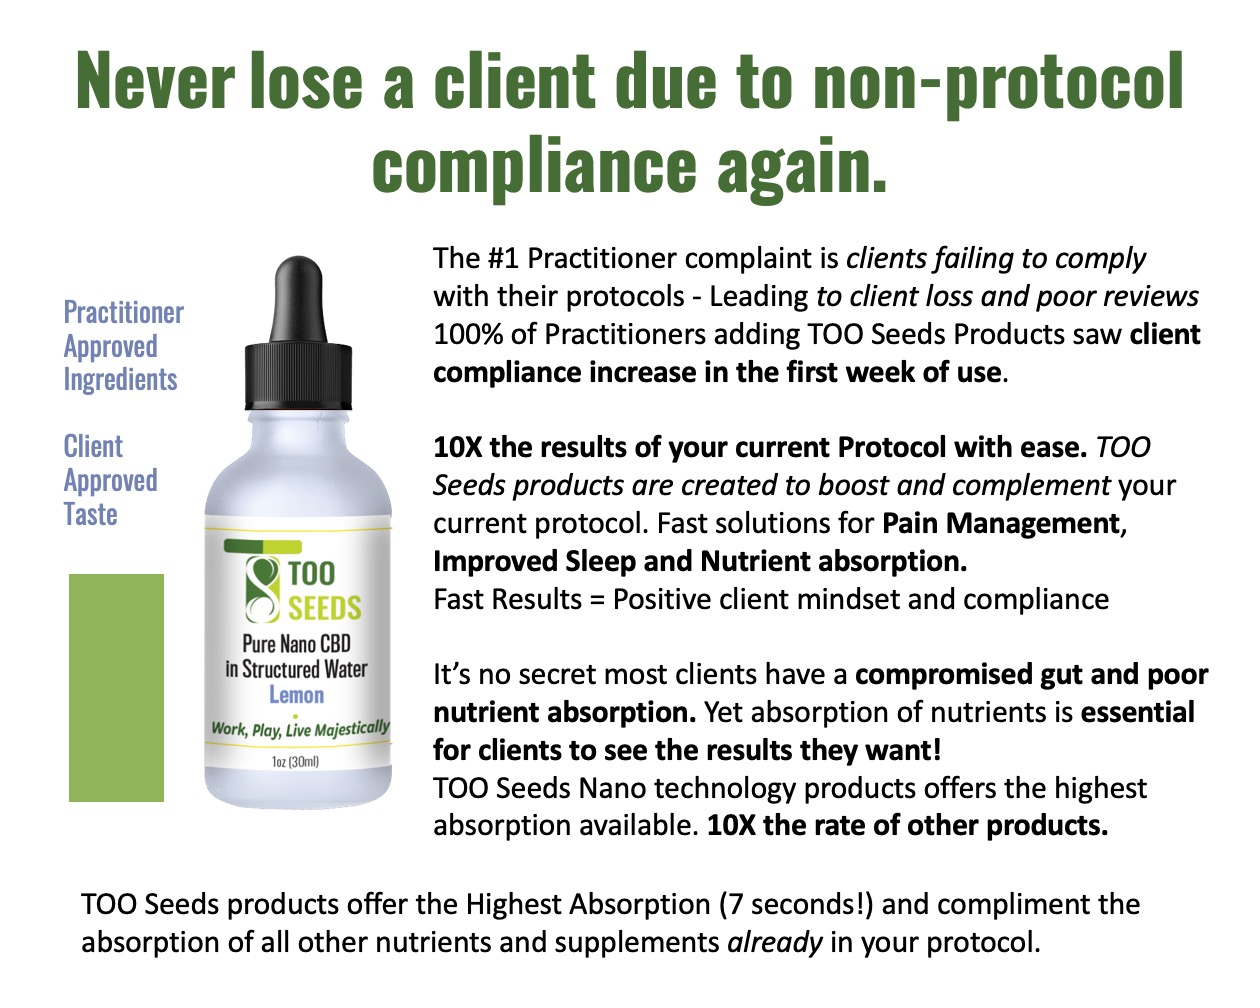 Never lose a client due to non-protocol compliance again.